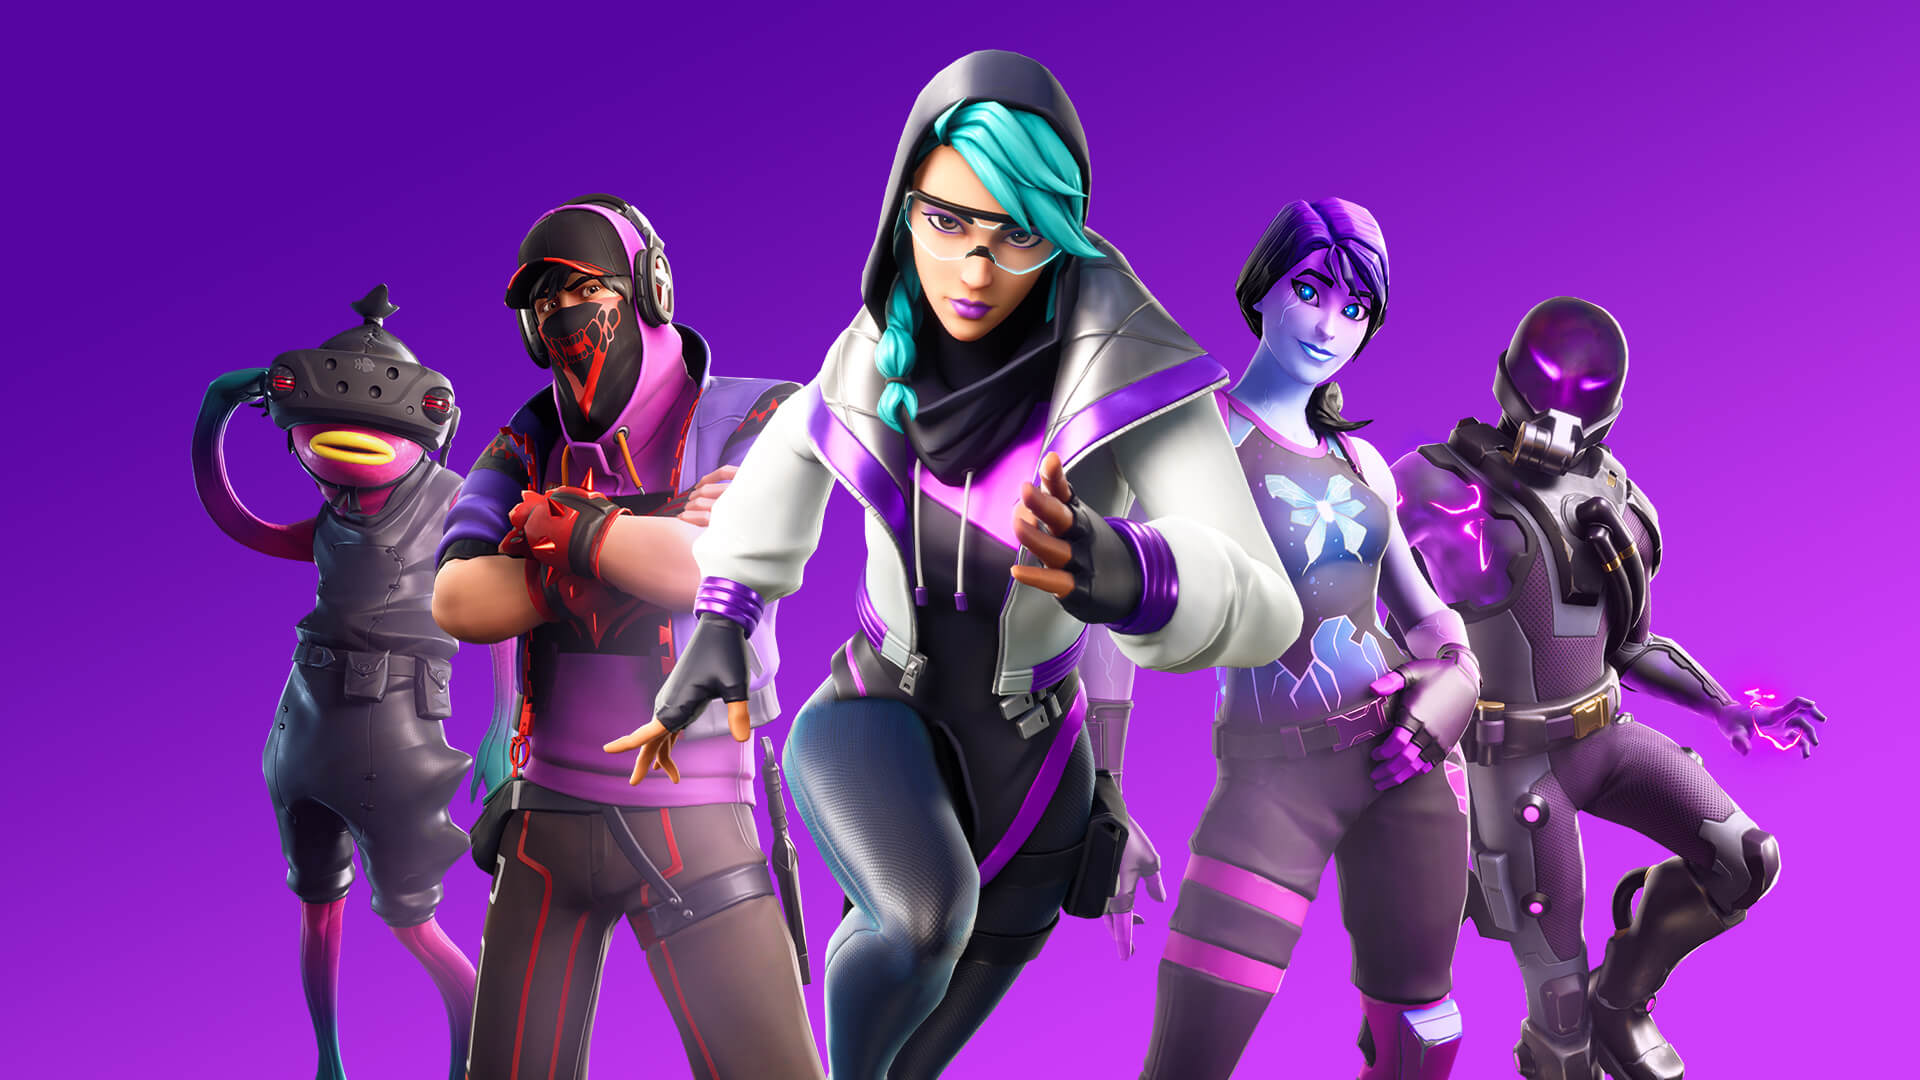 Epic asks for community's help discovering Fortnite bugs